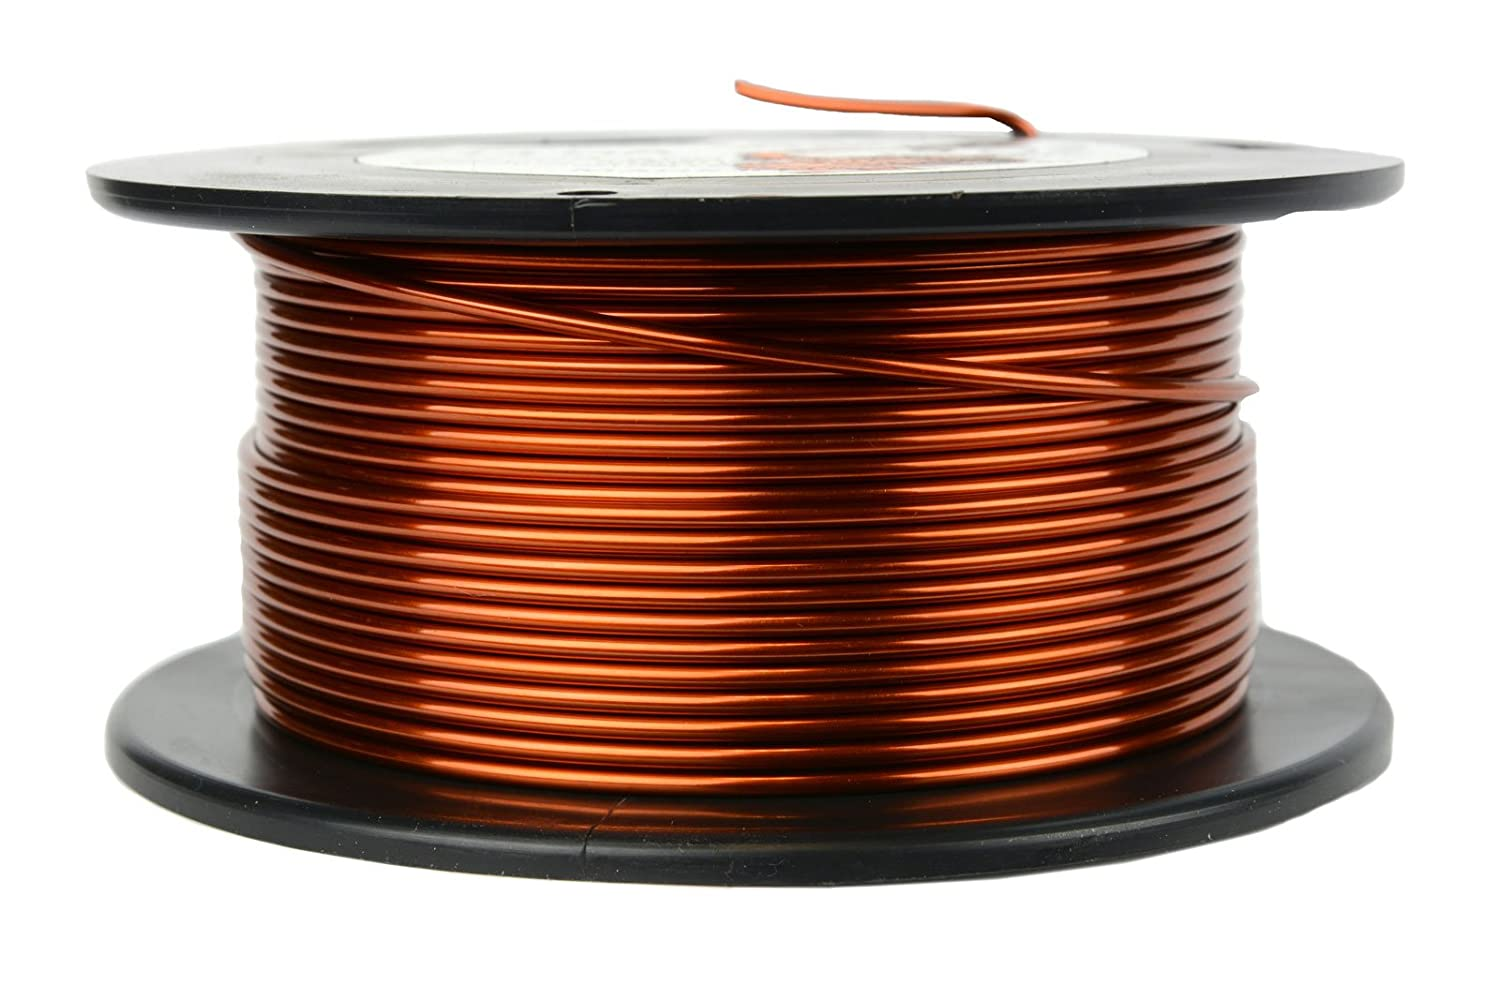 8 oz 40 ft 200/°C Magnetic Coil Winding TEMCo 14 AWG Copper Magnet Wire